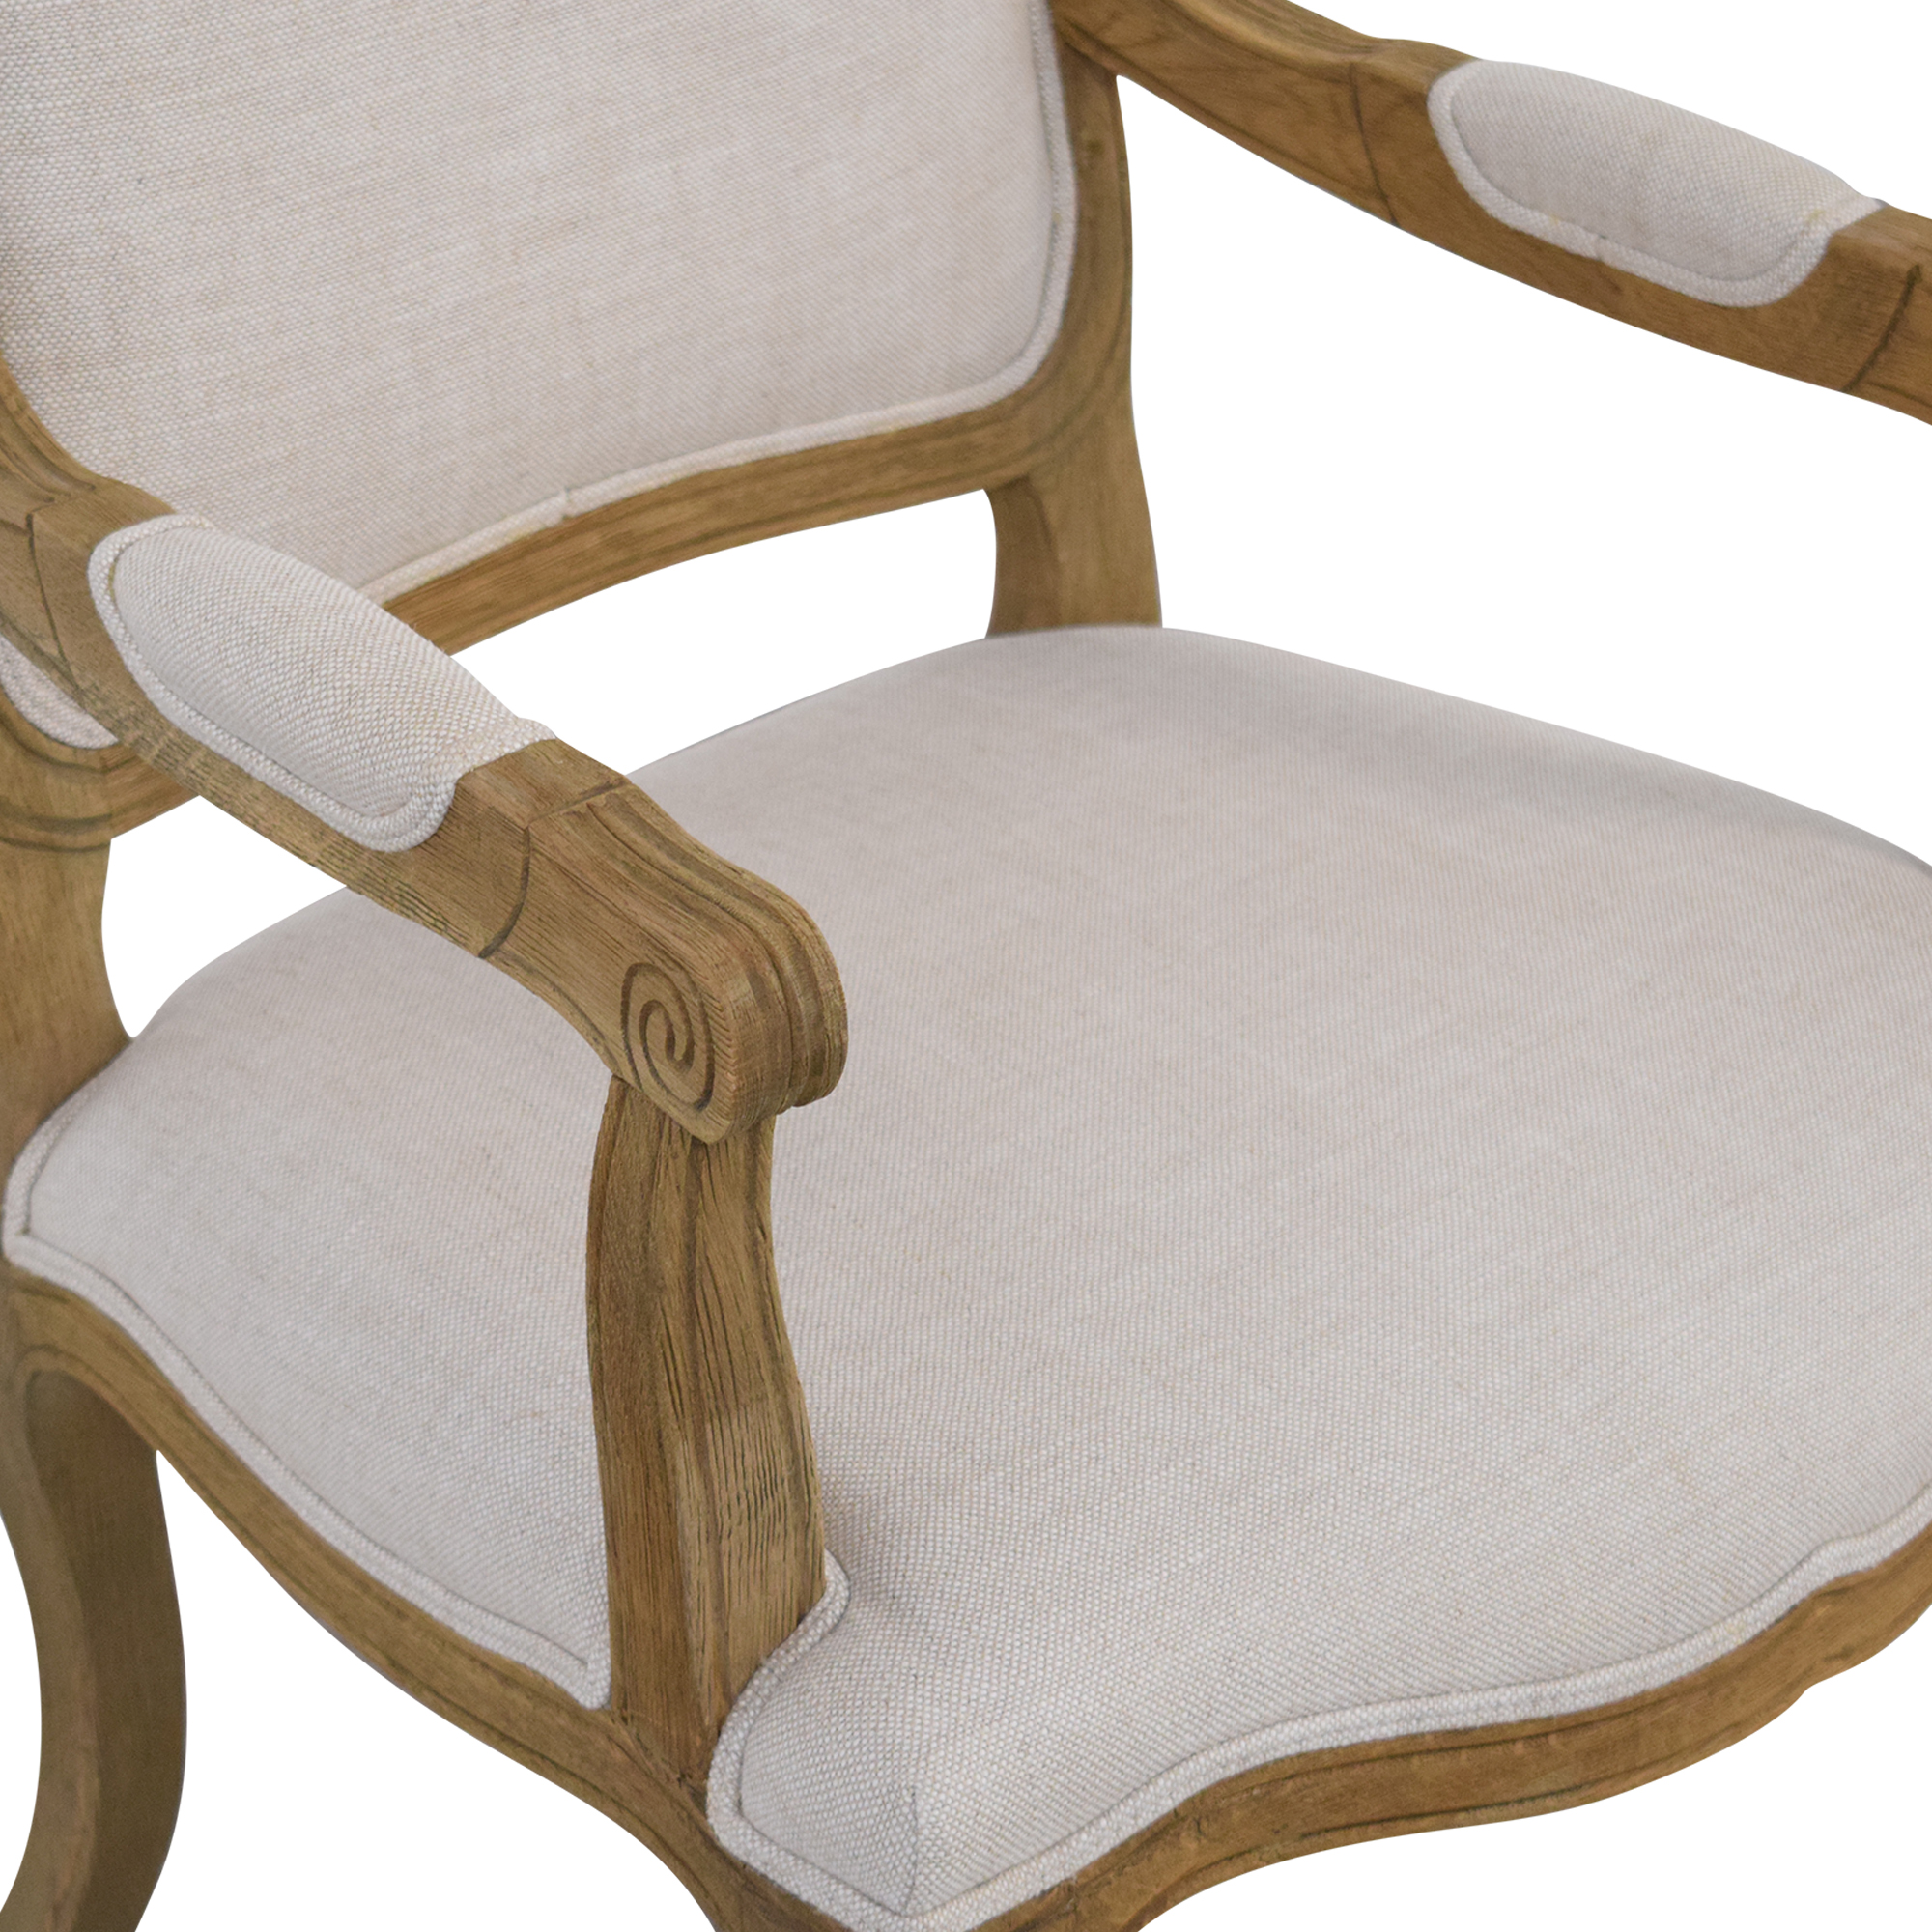 Restoration Hardware Restoration Hardware Vintage French Camelback Fabric Armchair on sale